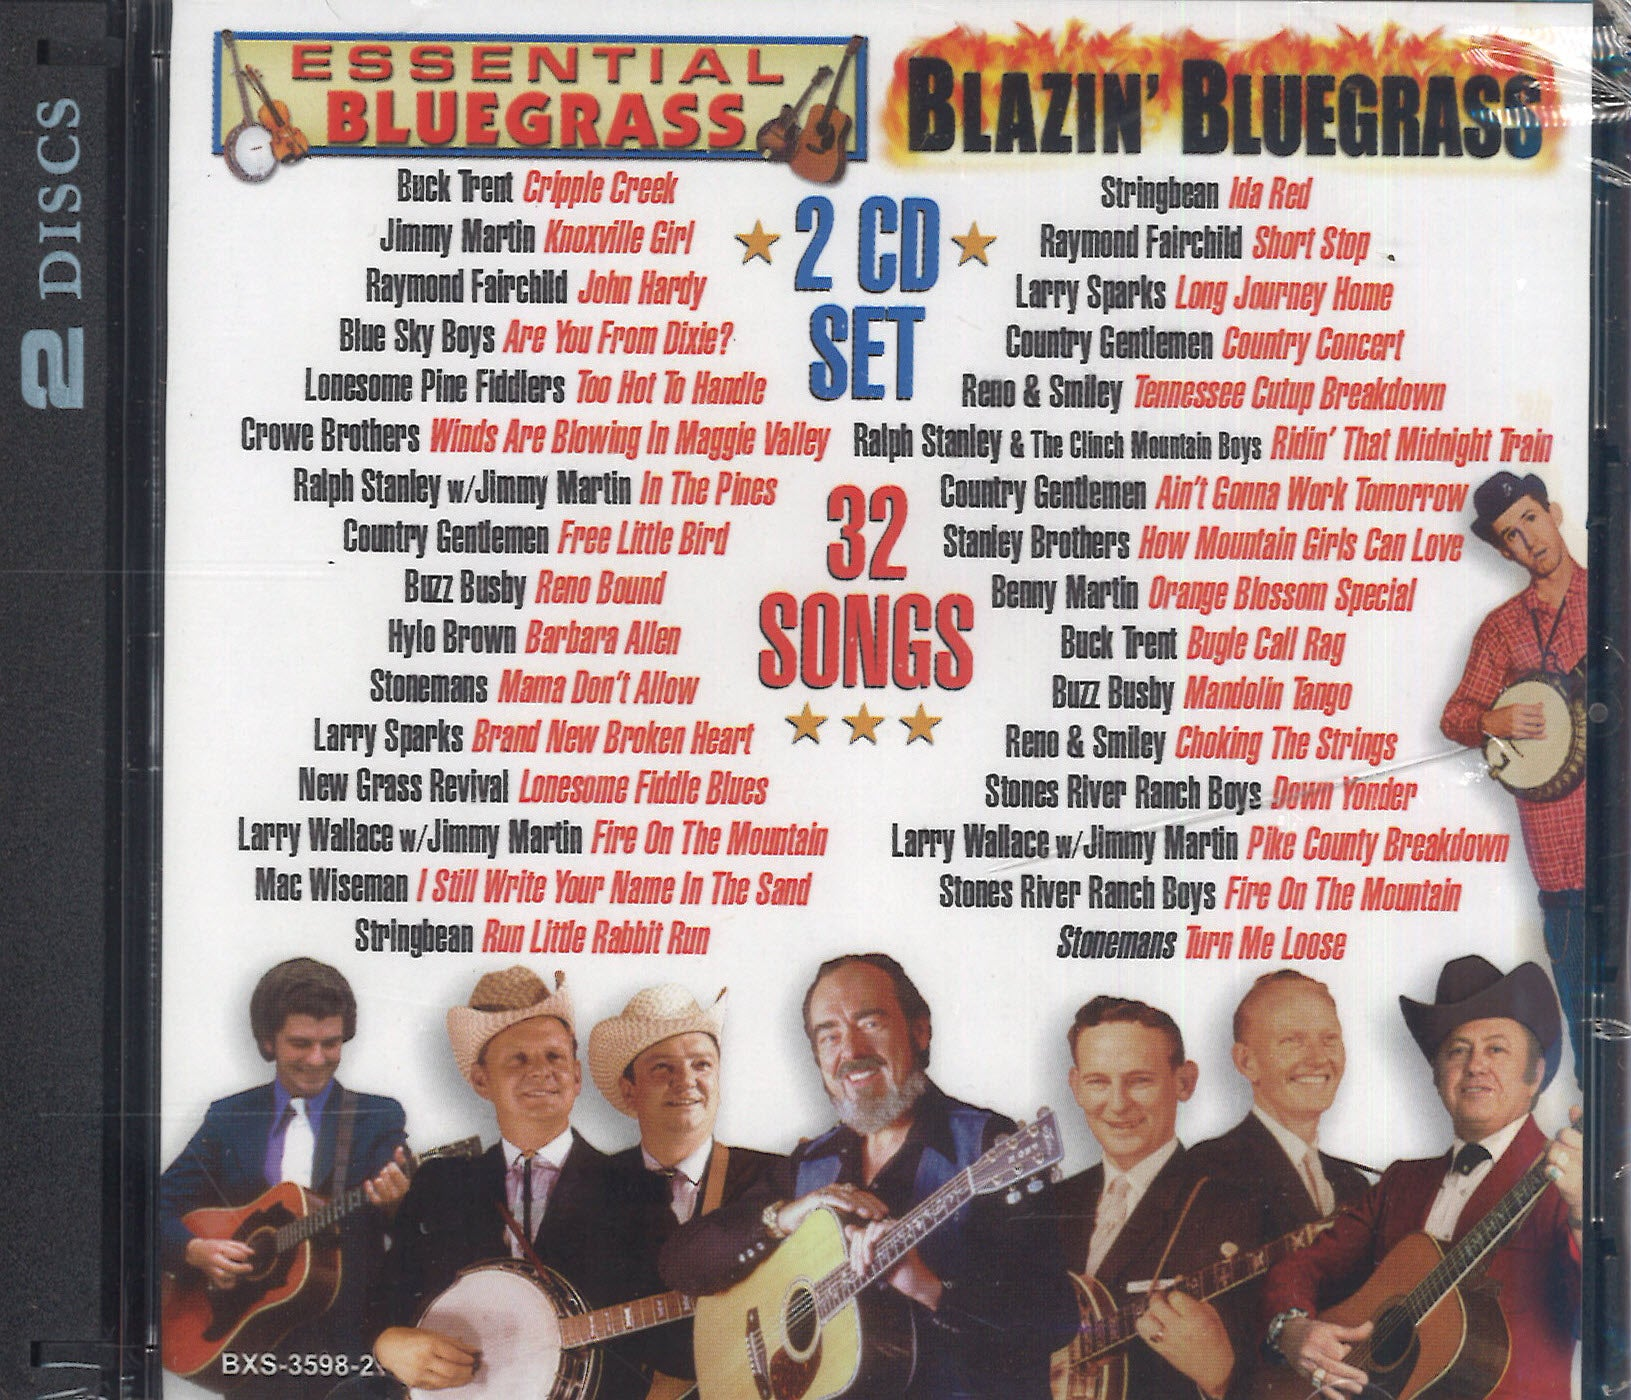 Various Artists Blazin' Bluegrass: 2 CD Set